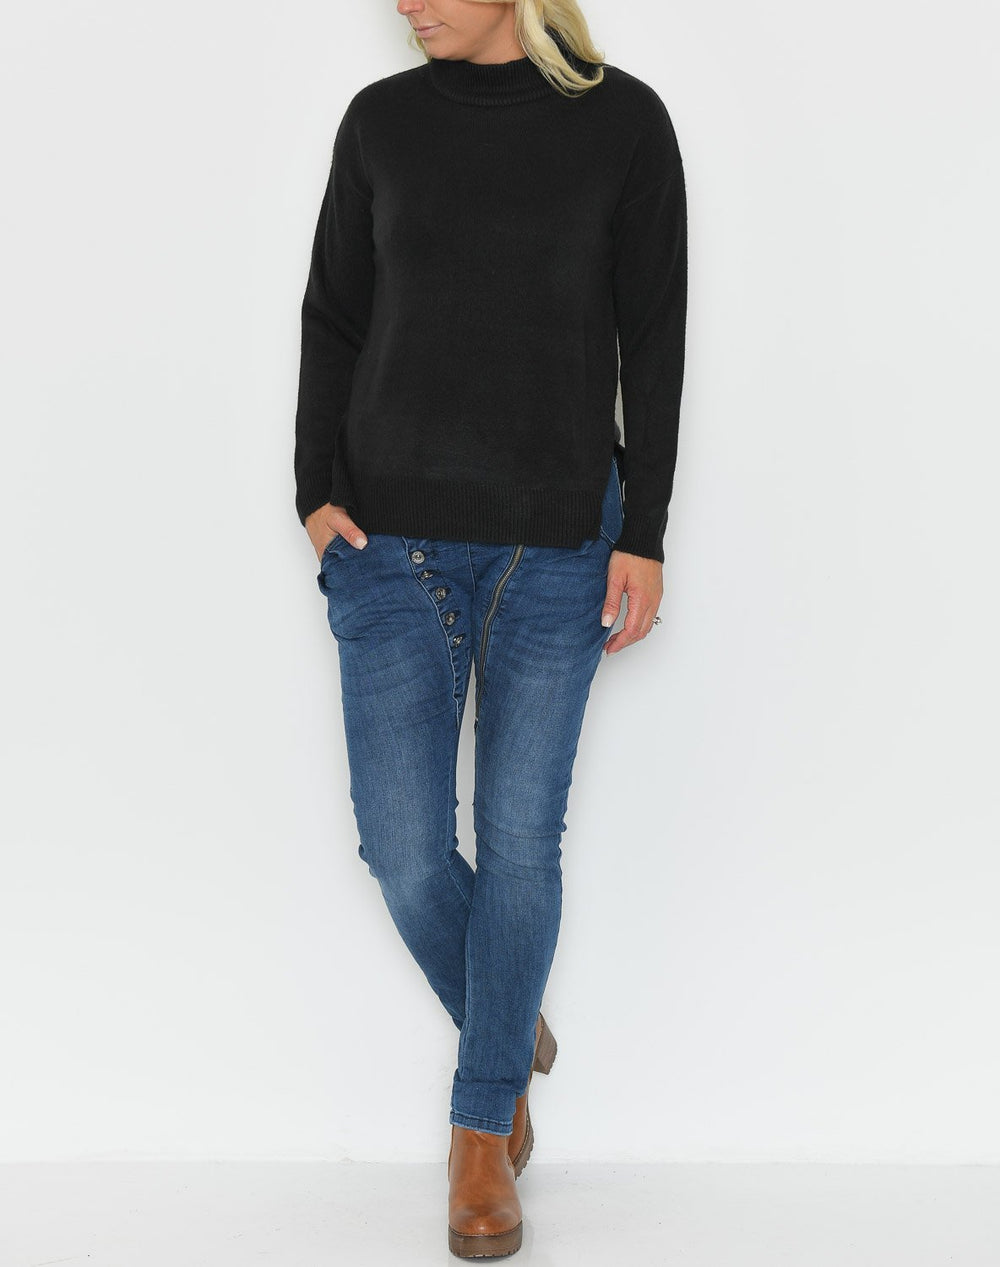 B.young Malea pullover 3 black - Online-Mode